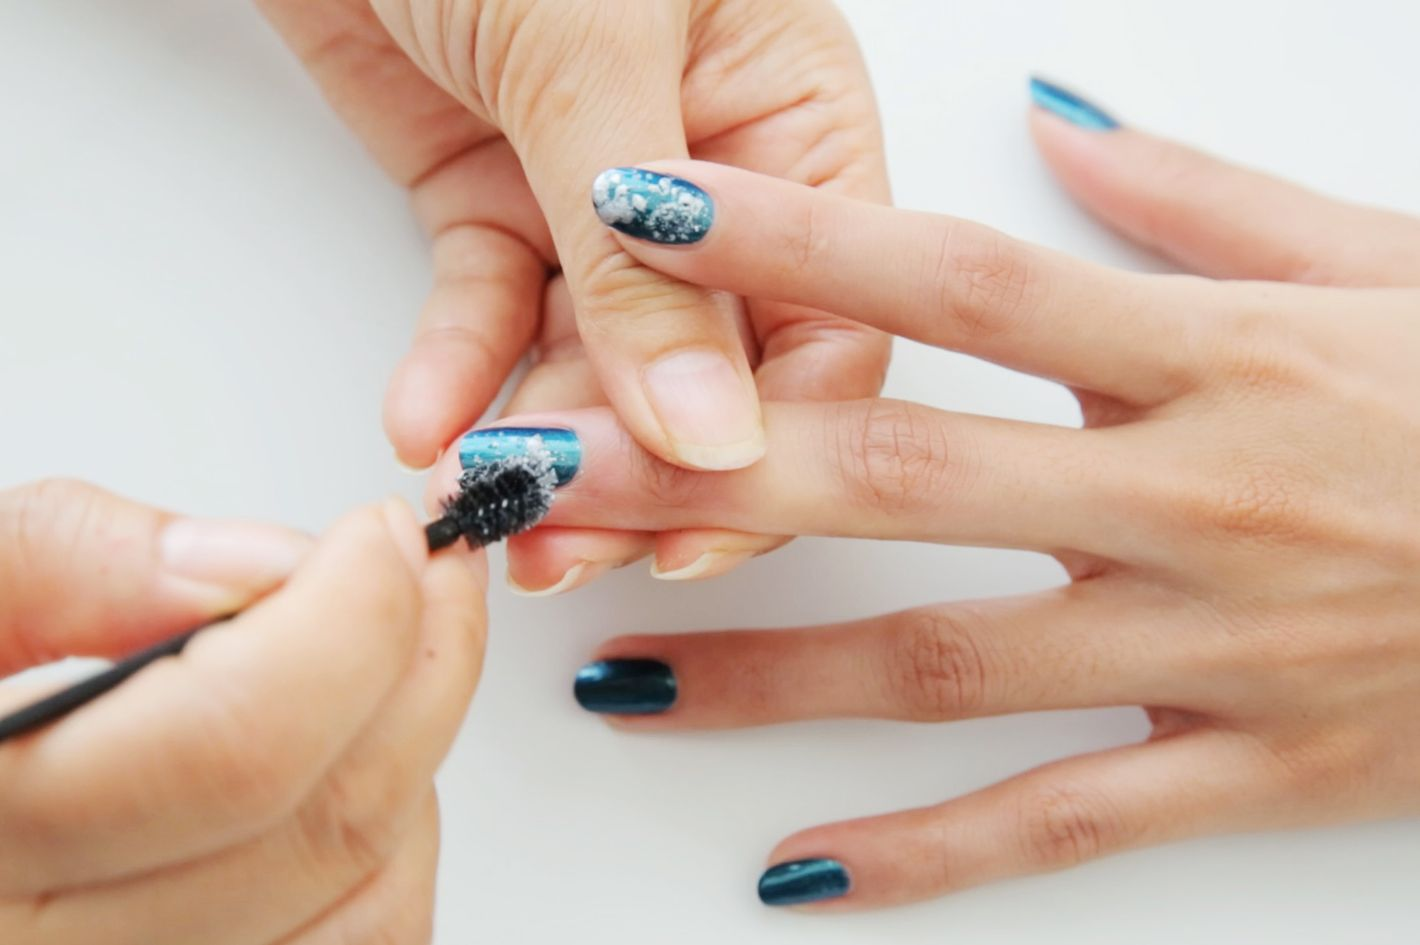 How to Draw a Galaxy on Your Nails